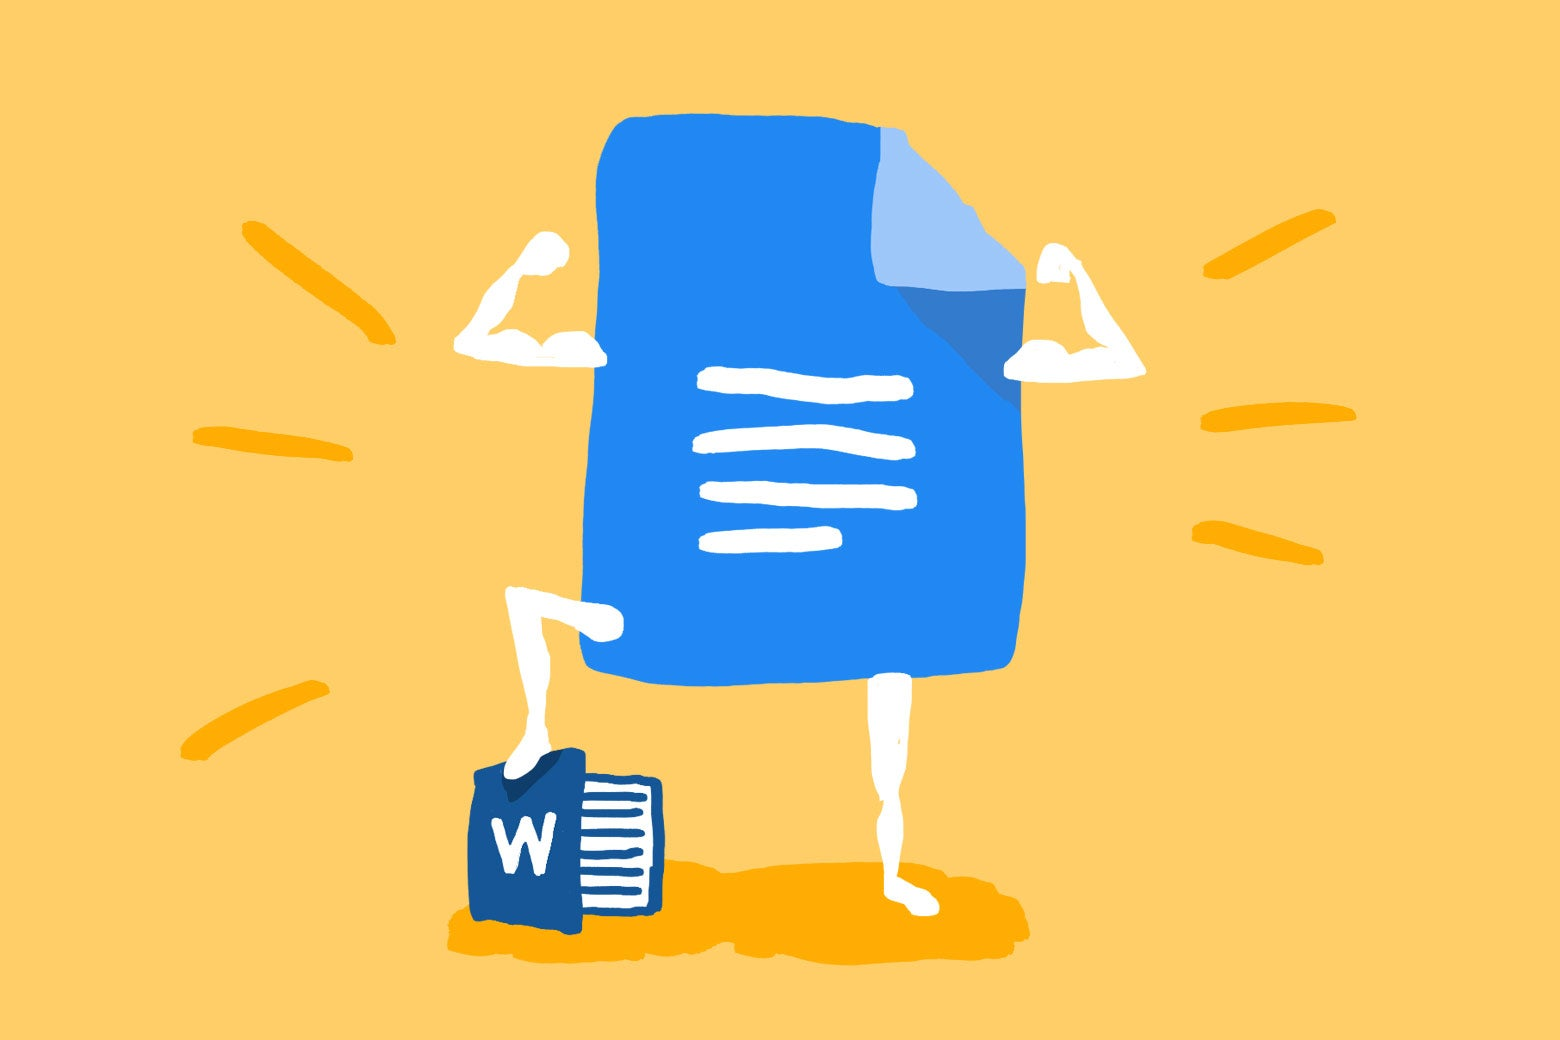 Illustration: A Google Docs logo with arms and legs poses while using a logo of Microsoft Word as a stepstool. Illustration by Natalie Matthews-Ramo. Google Docs is the best editor.